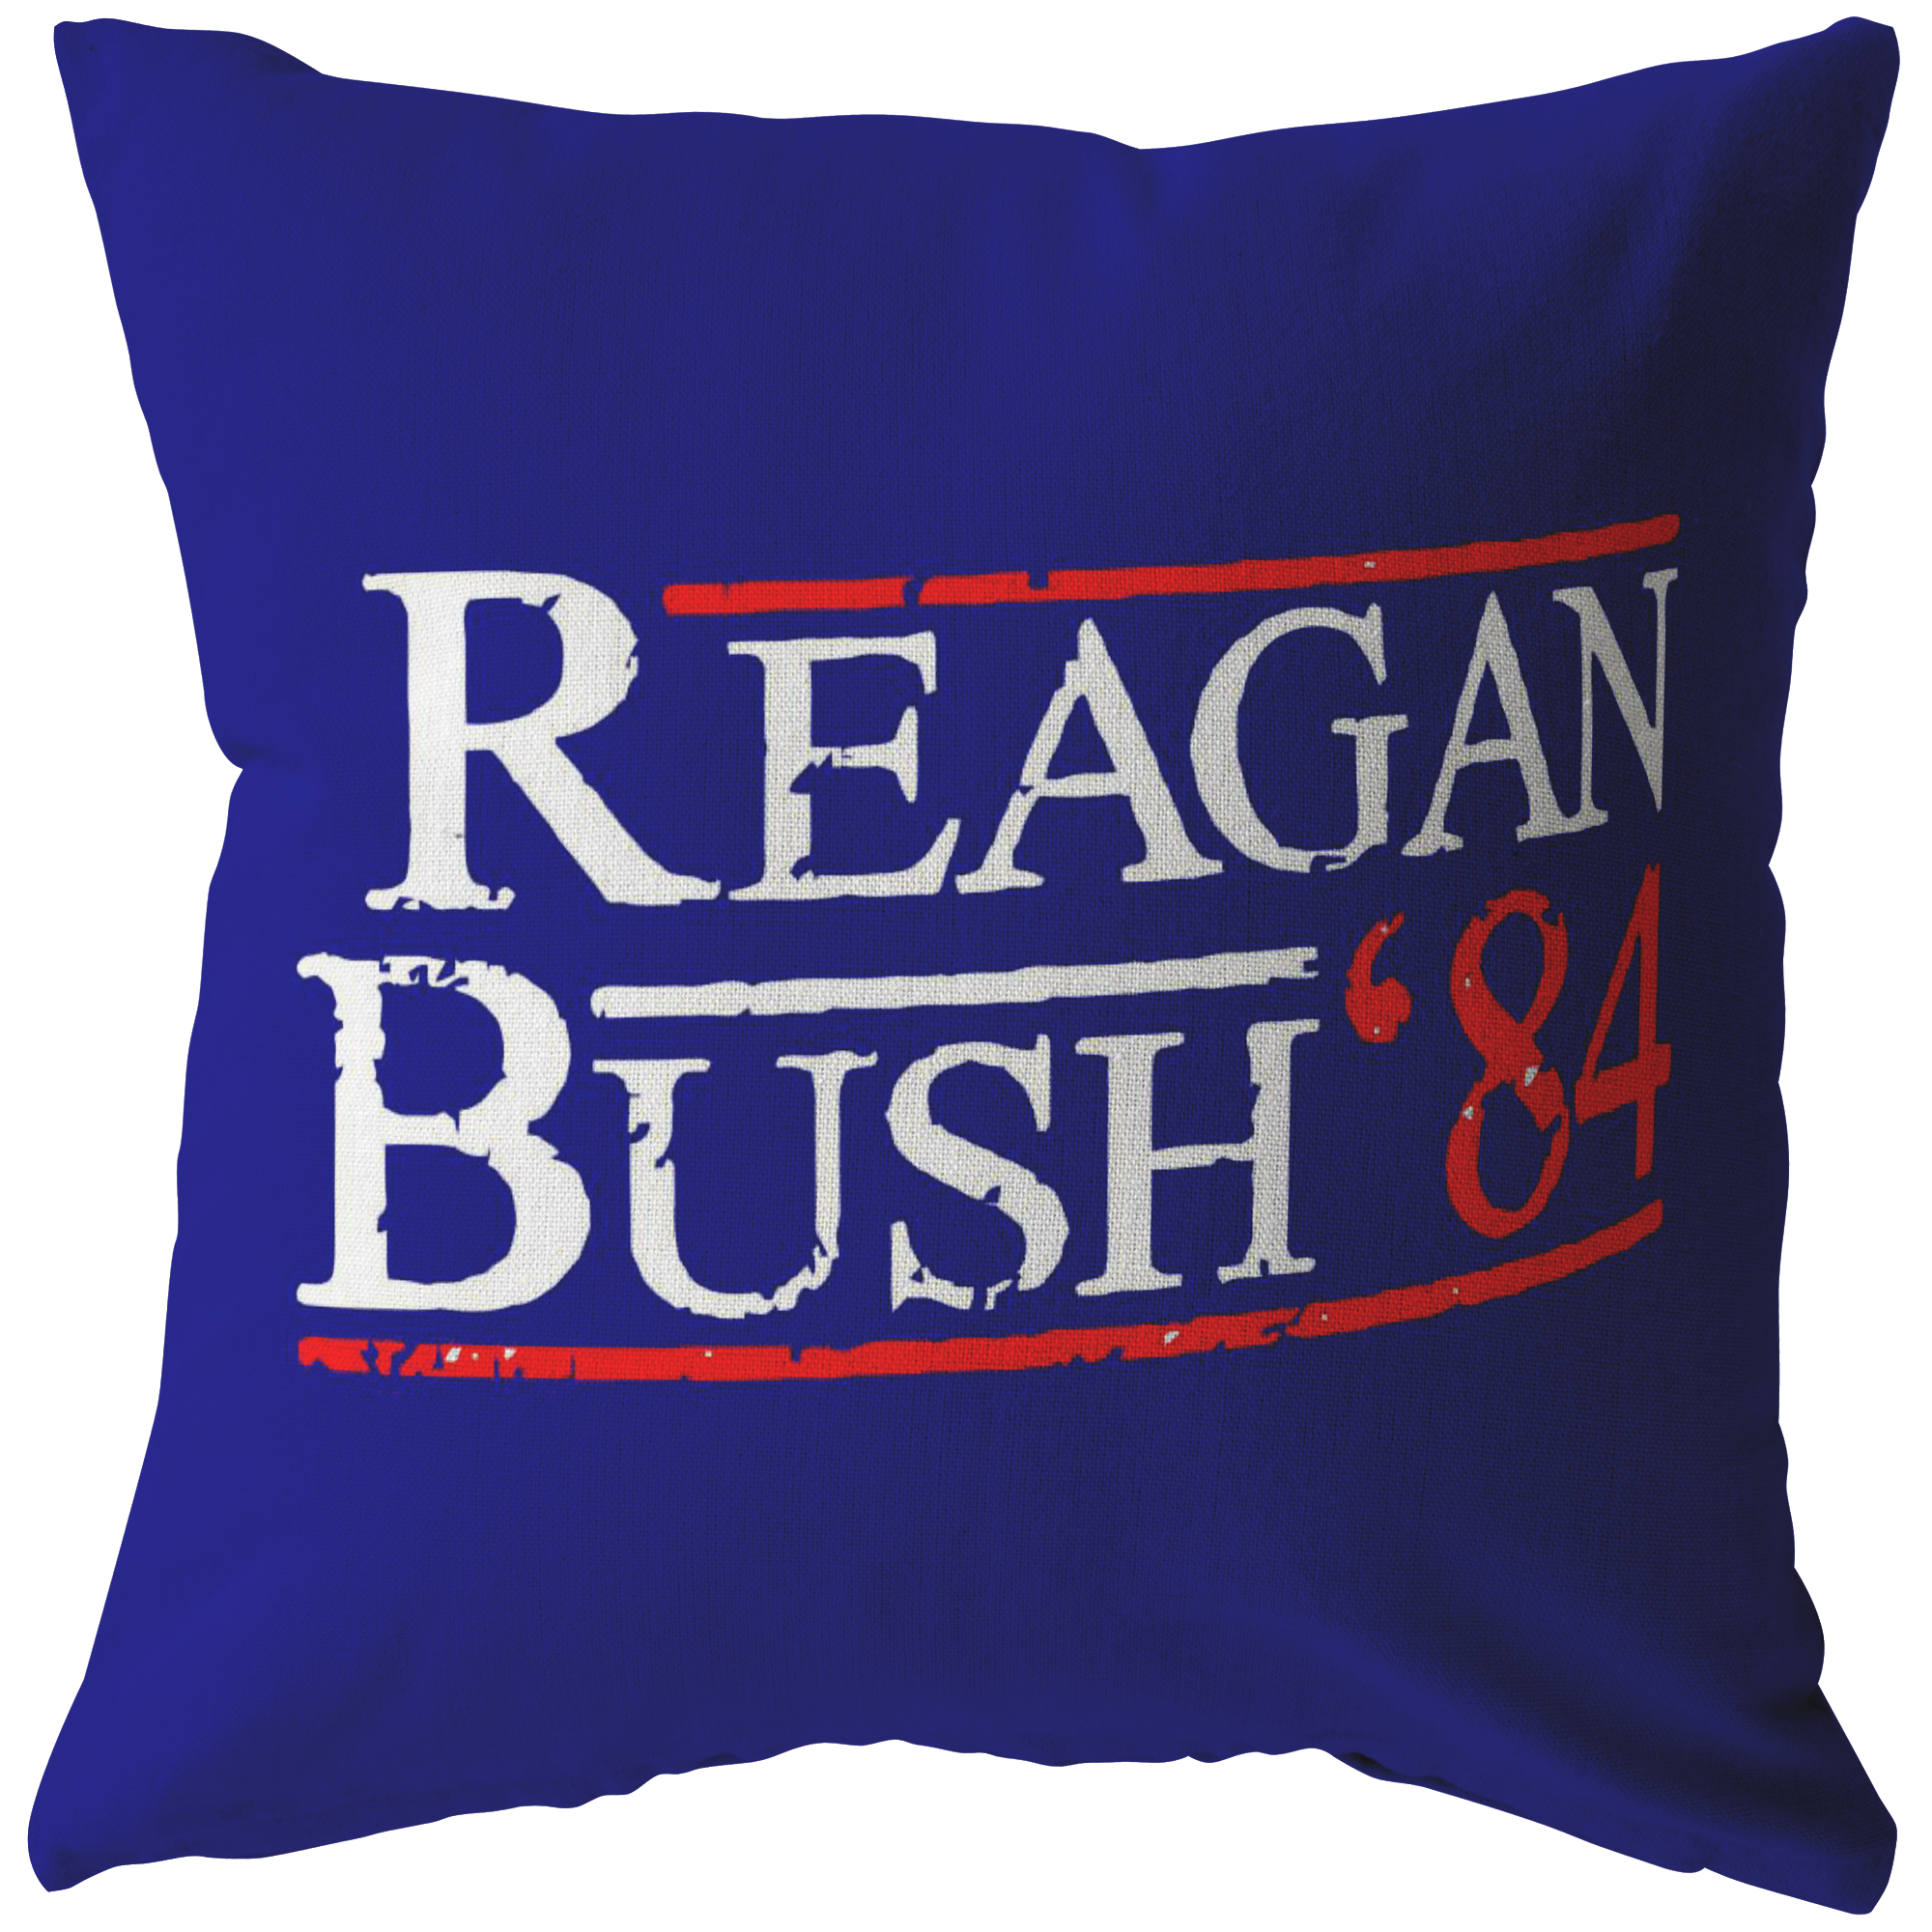 Regan Bush in 84 Pillow